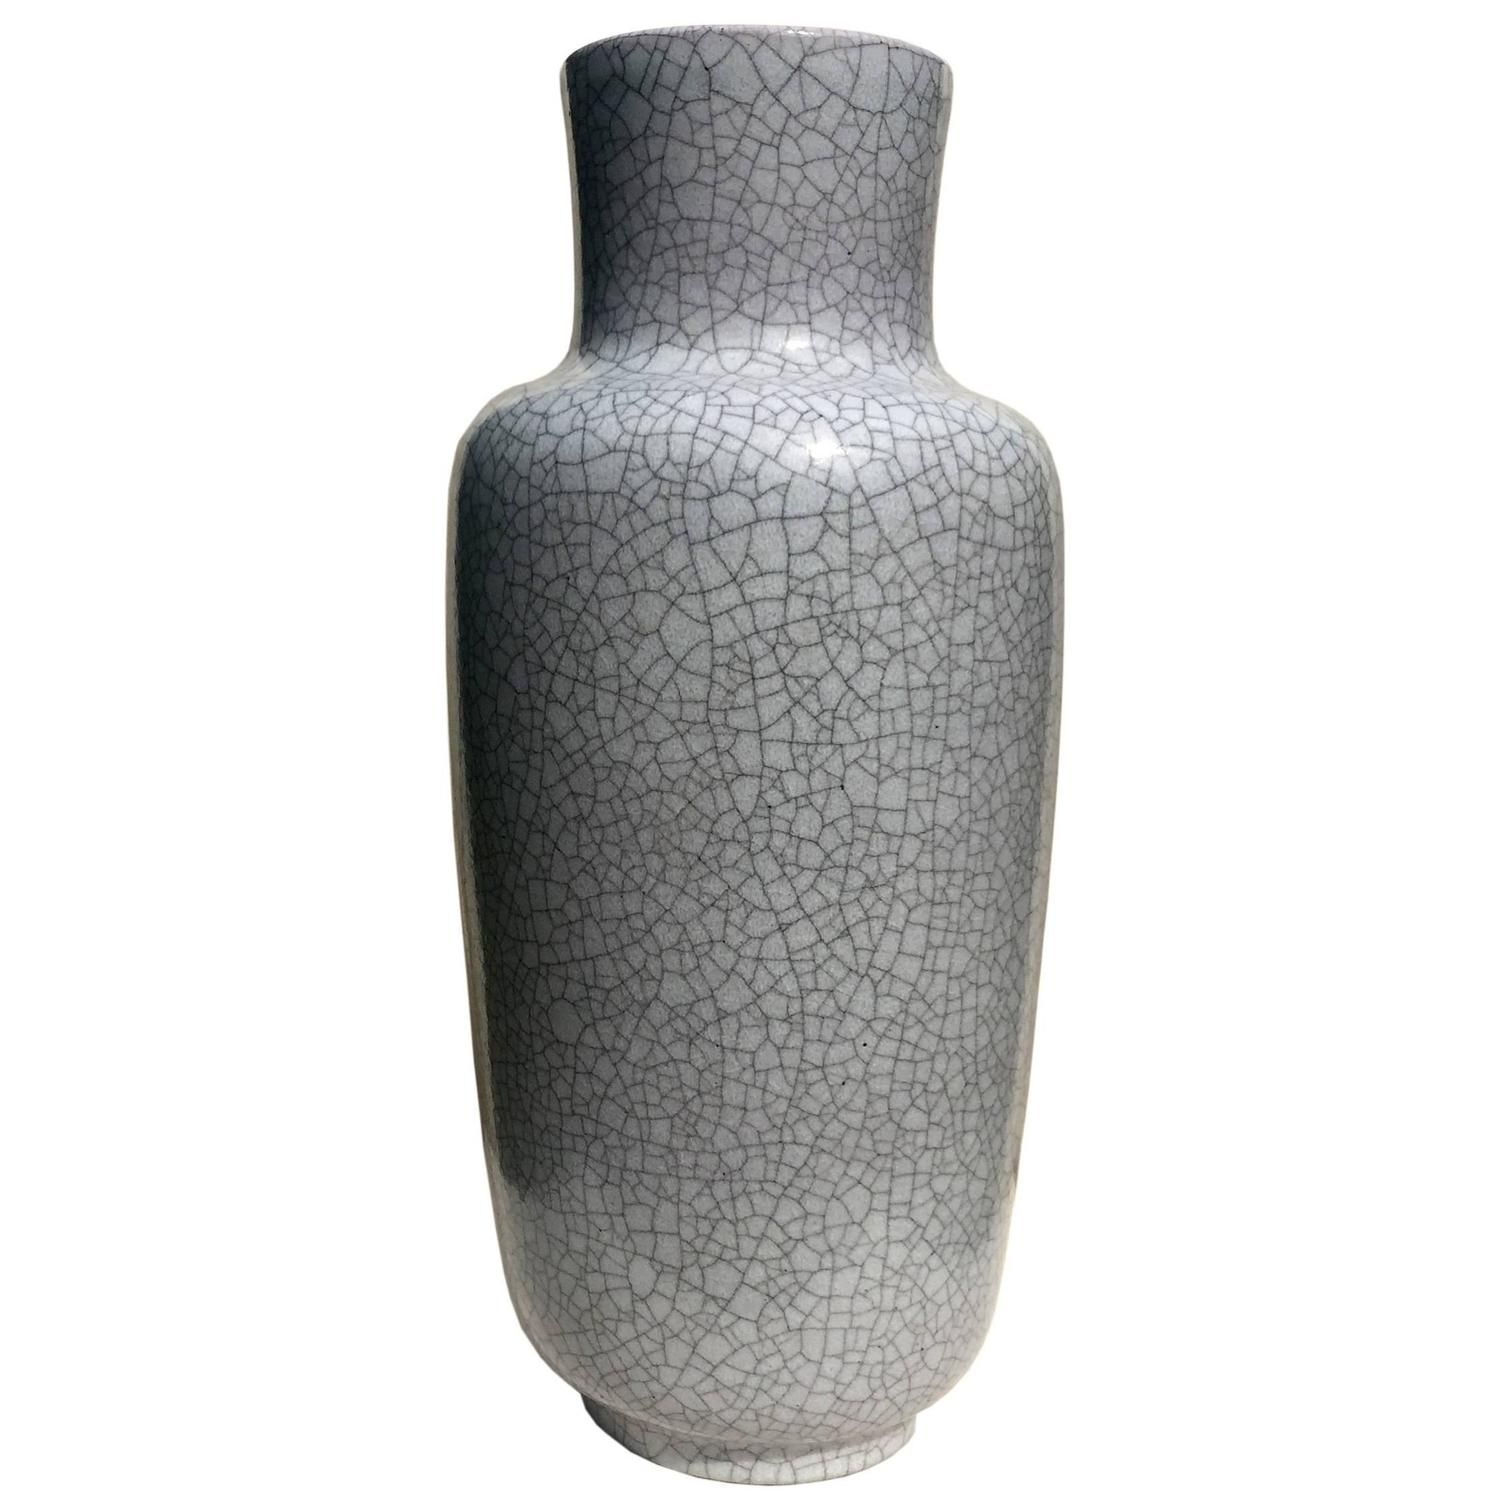 Large floor vase in gray crackled glaze by glatzle for karlsruhe large floor vase in gray crackled glaze by glatzle for karlsruhe majolica 1960 reviewsmspy